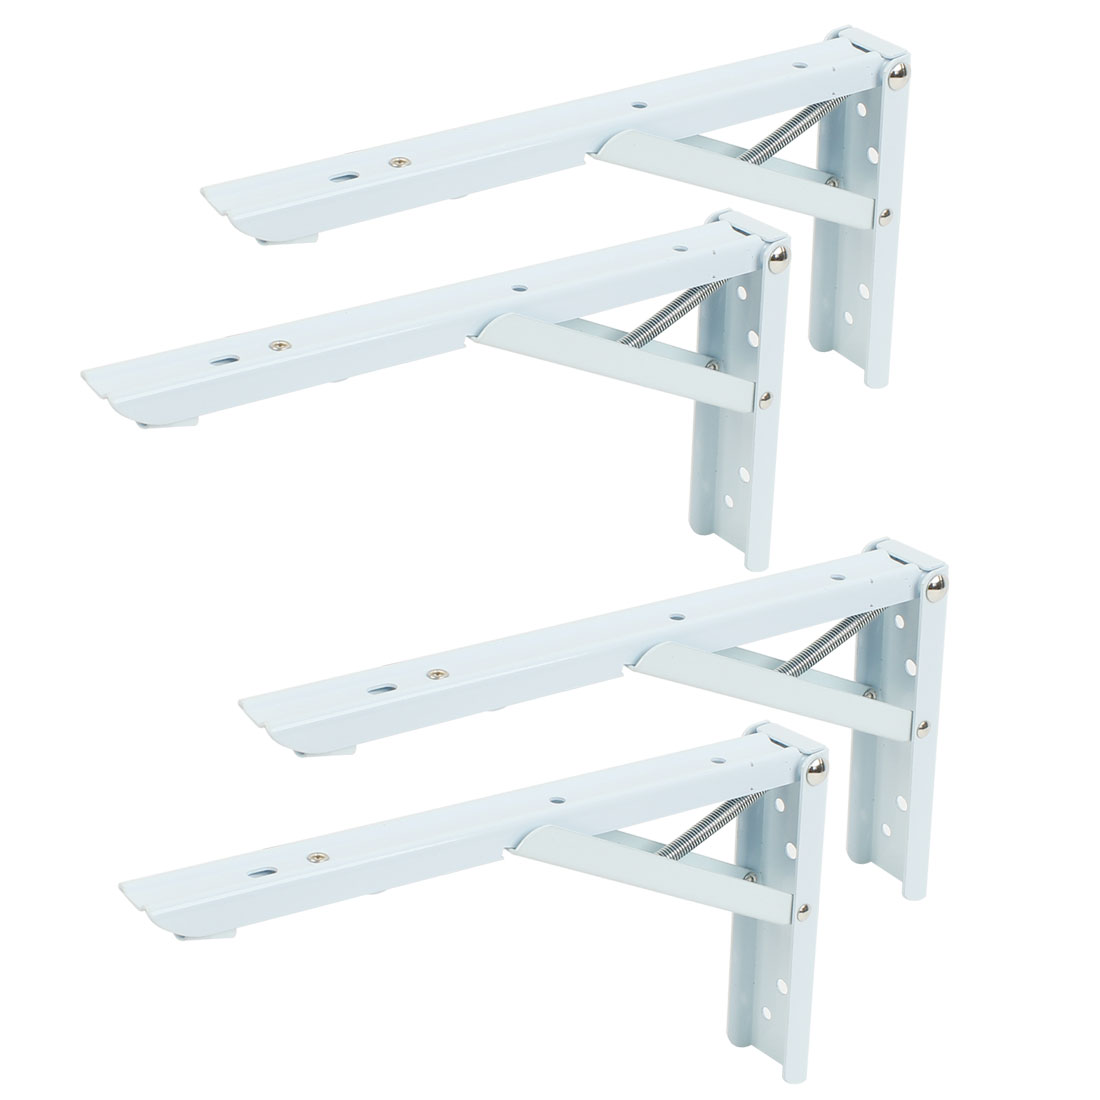 "4 Pcs Wall Mounting 90 Degree Store Shop Foldable Shelf Bracket 10"" x 5"""